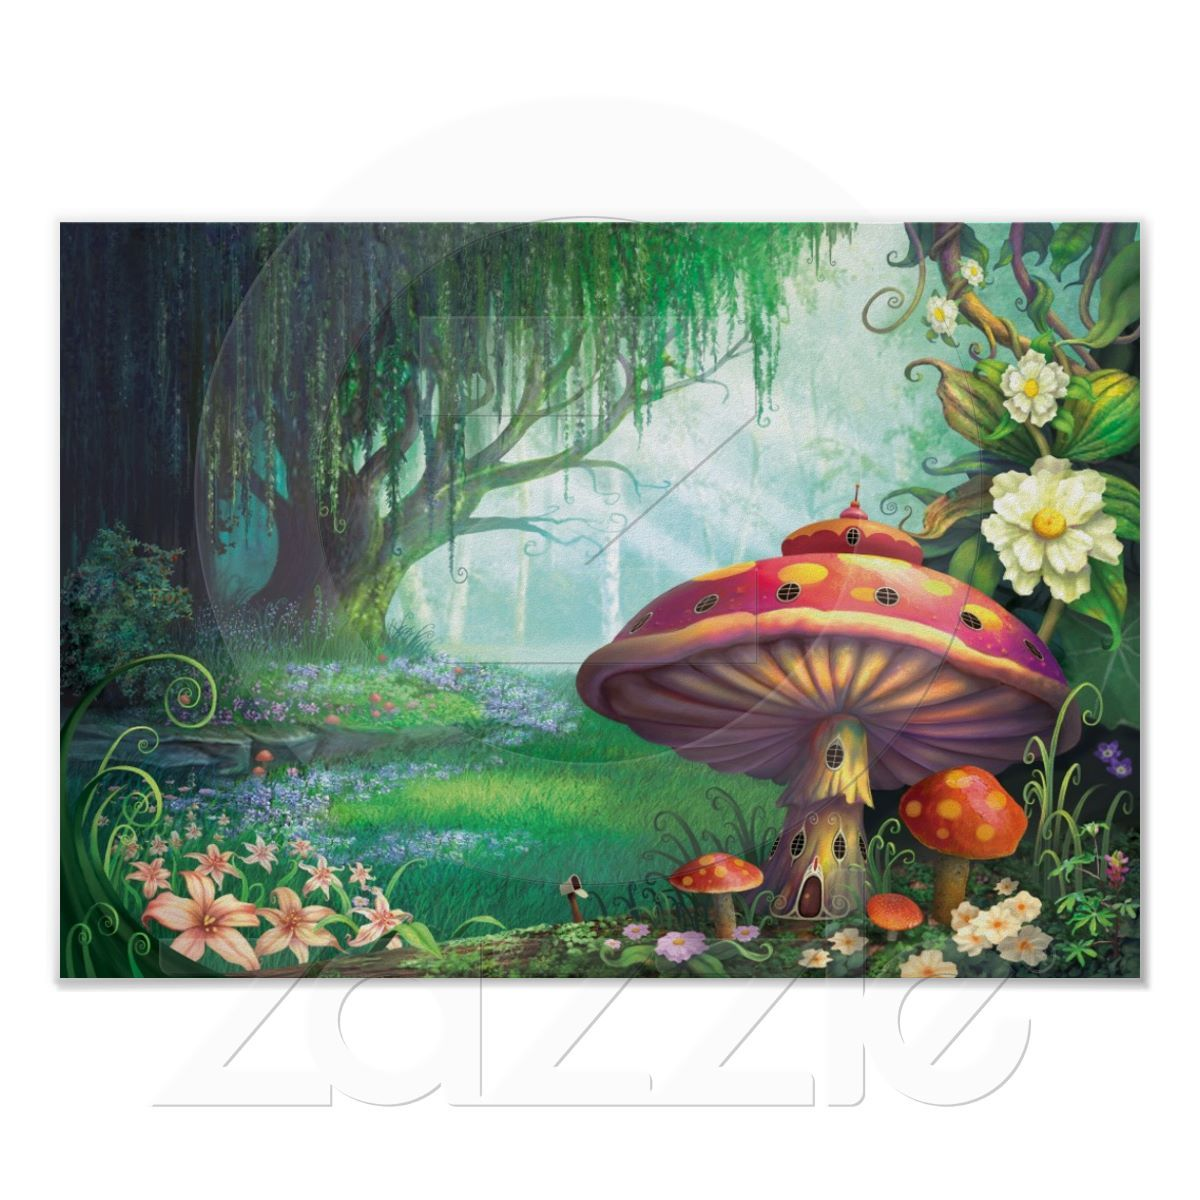 Enchanted Forest Poster Forest mural